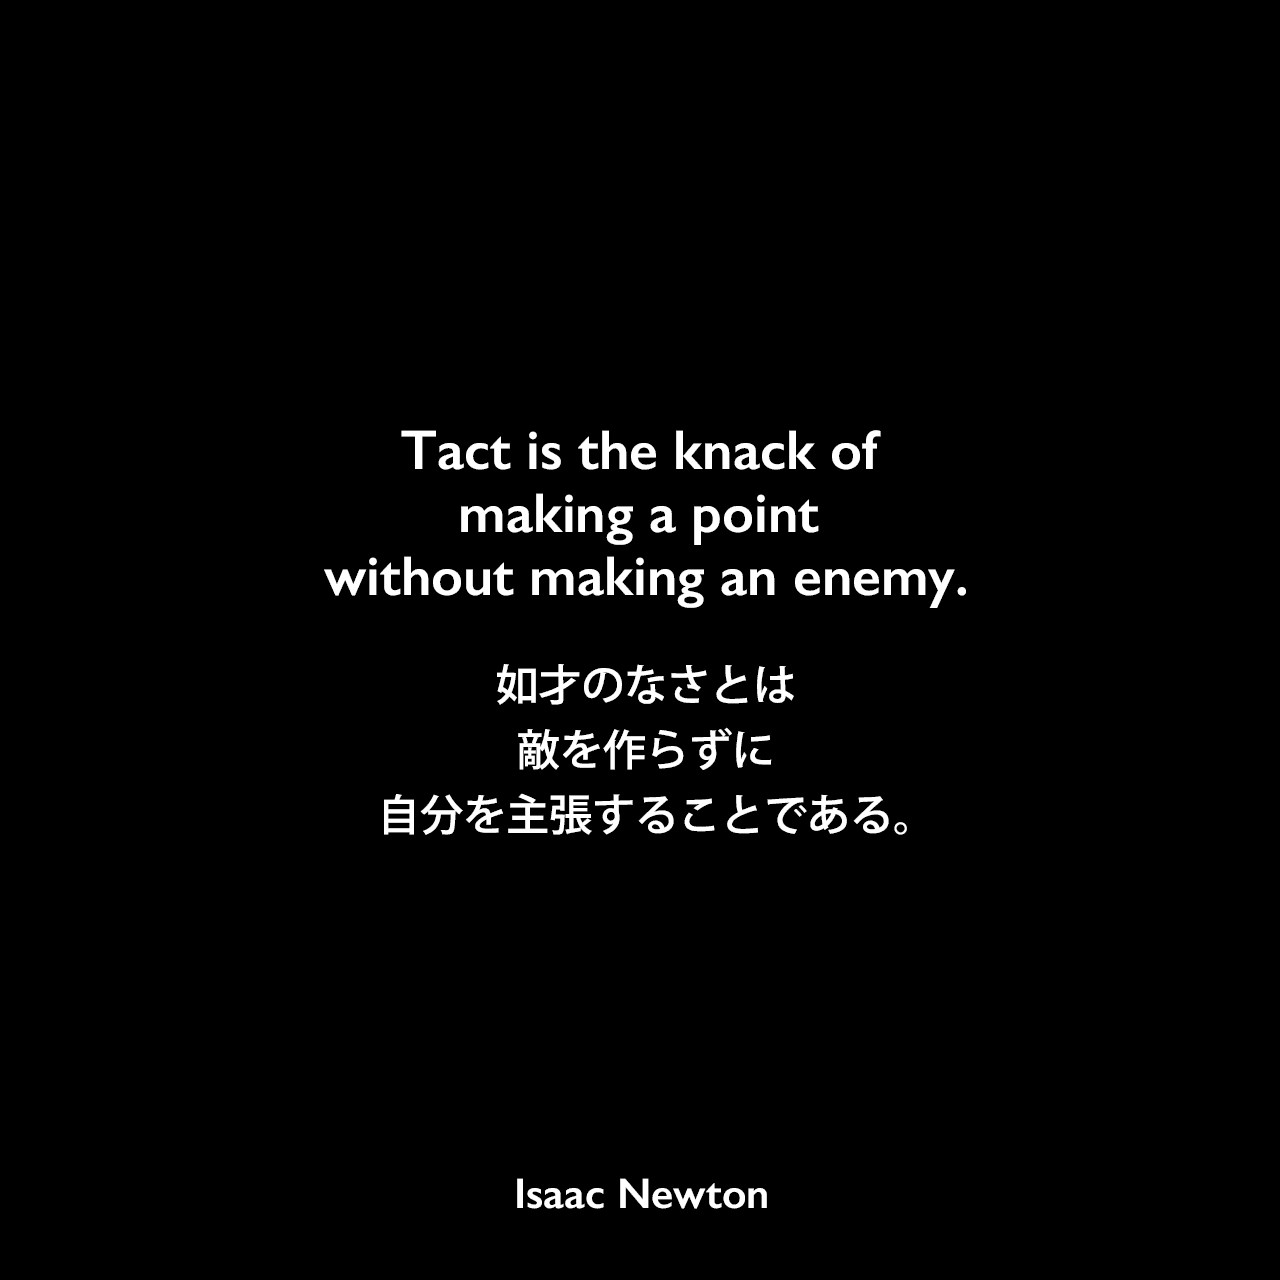 Tact is the knack of making a point without making an enemy.如才のなさとは敵を作らずに自分を主張することである。Isaac Newton